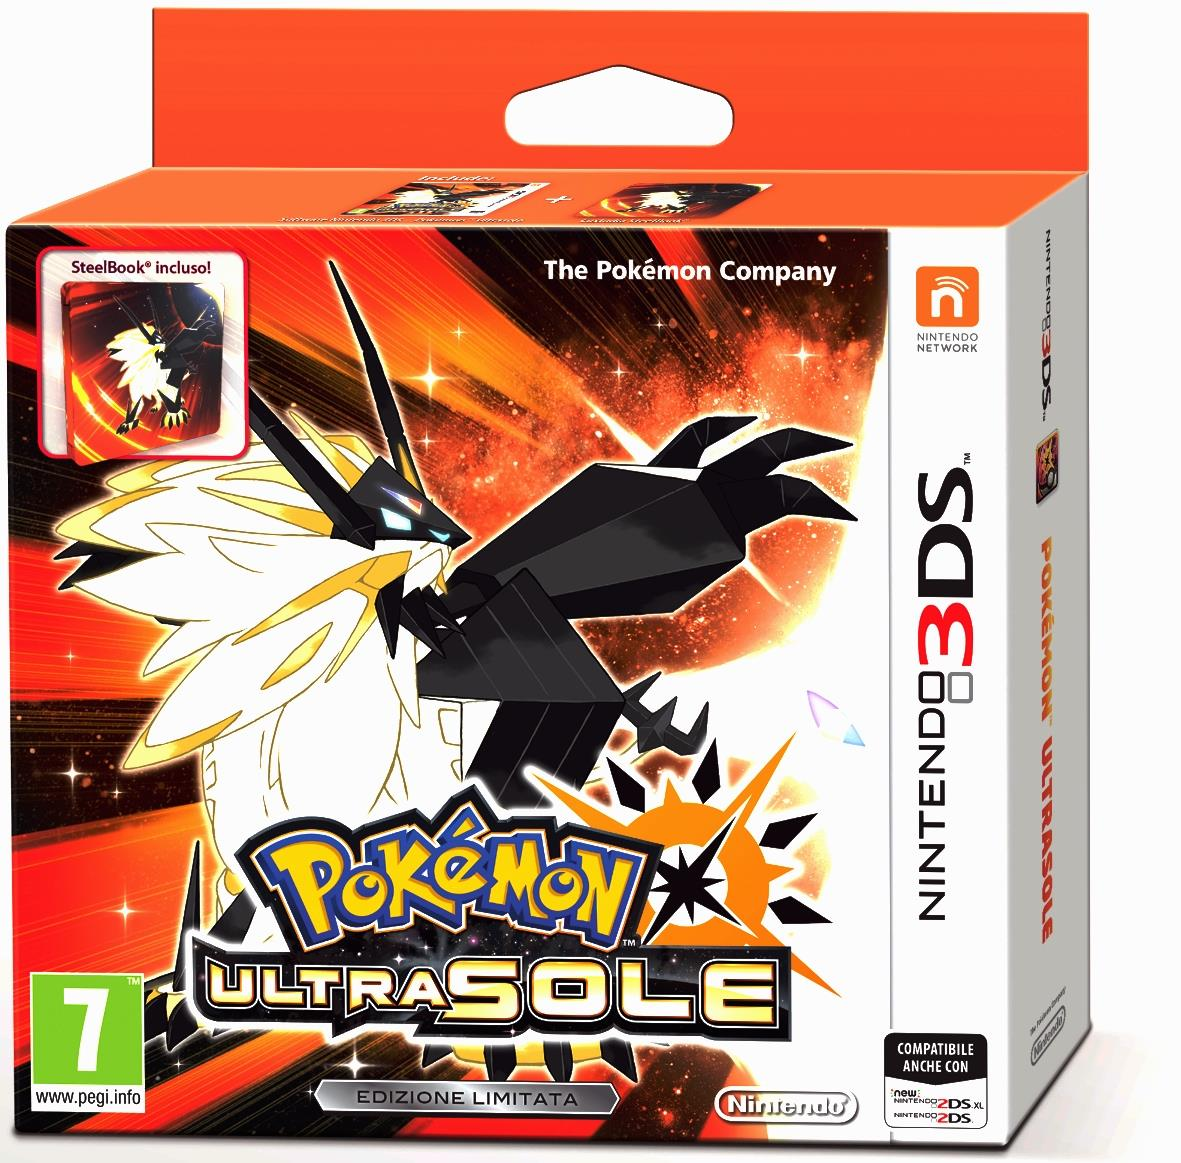 NINTENDO GAME NINTENDO 3DS POKEMON ULTRA SOLE + STEELBOOK LIMITED EDITION